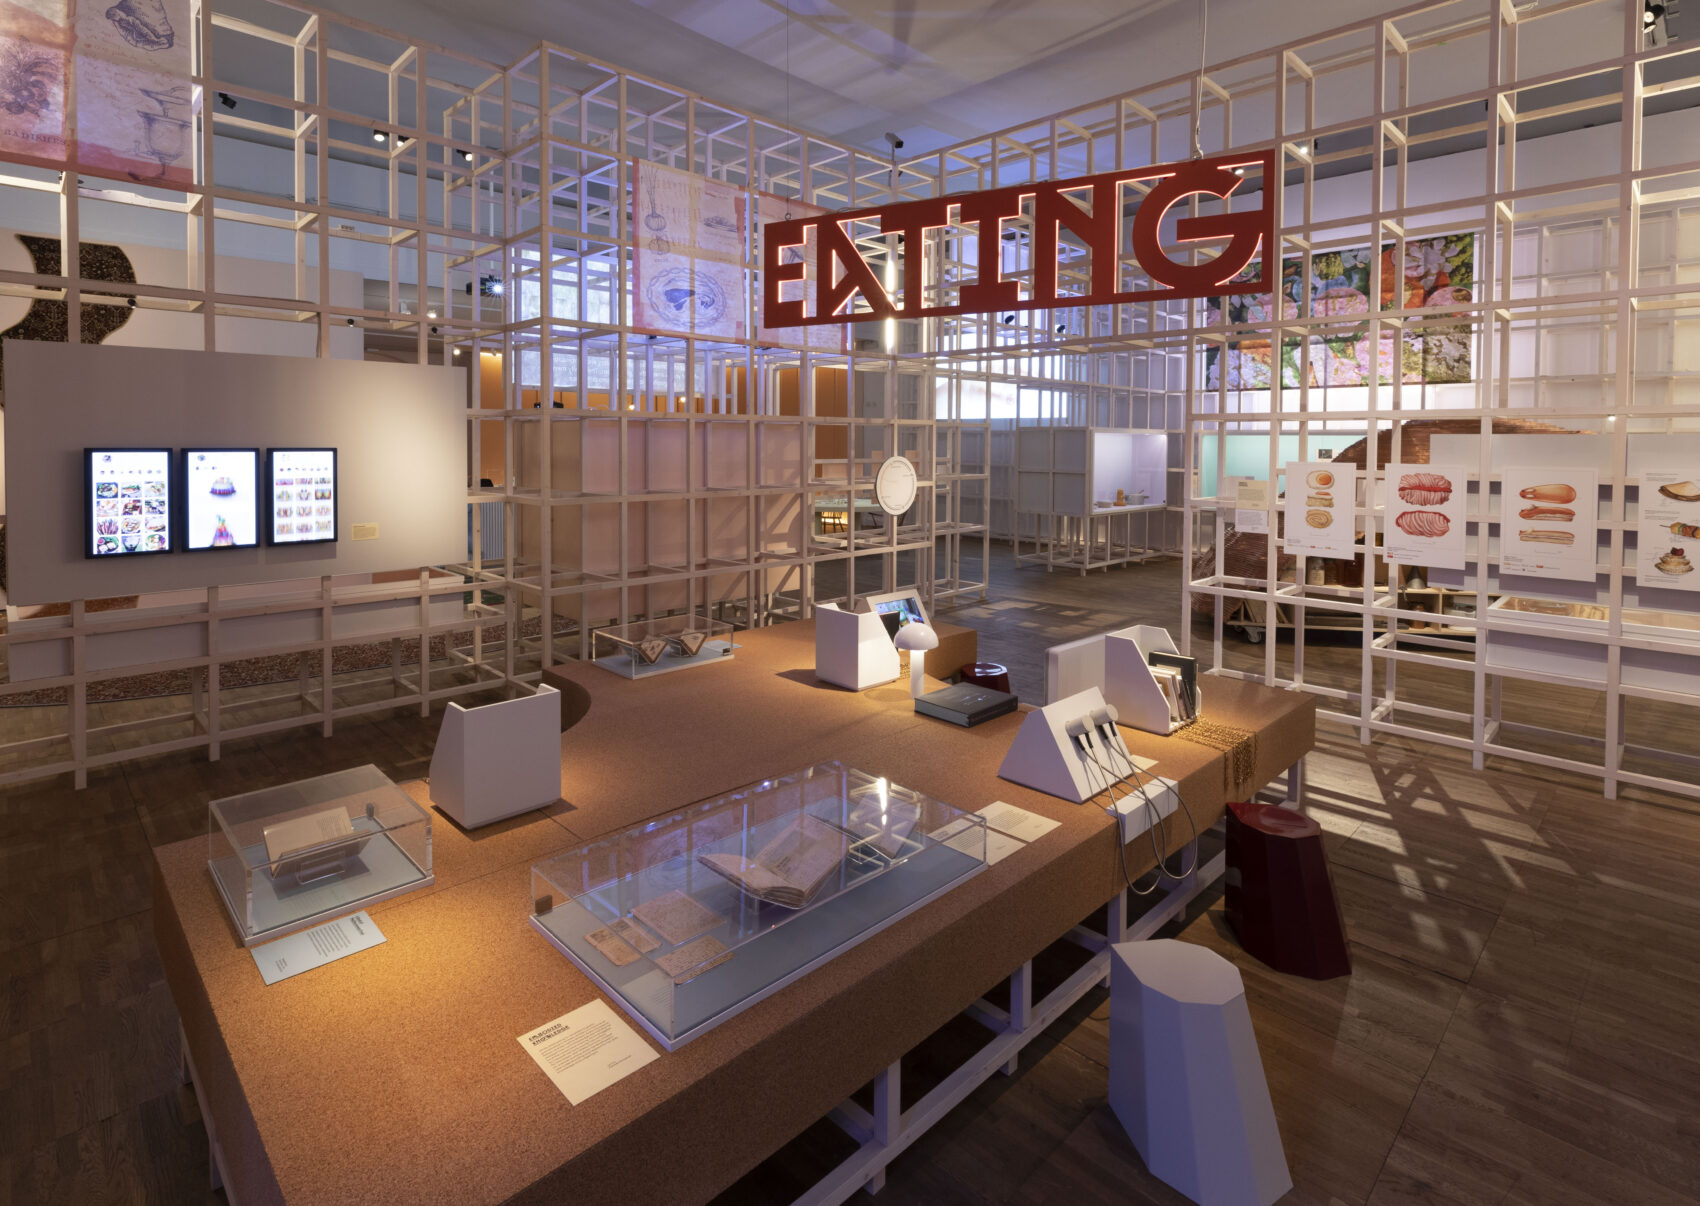 V&A future of food exhibition